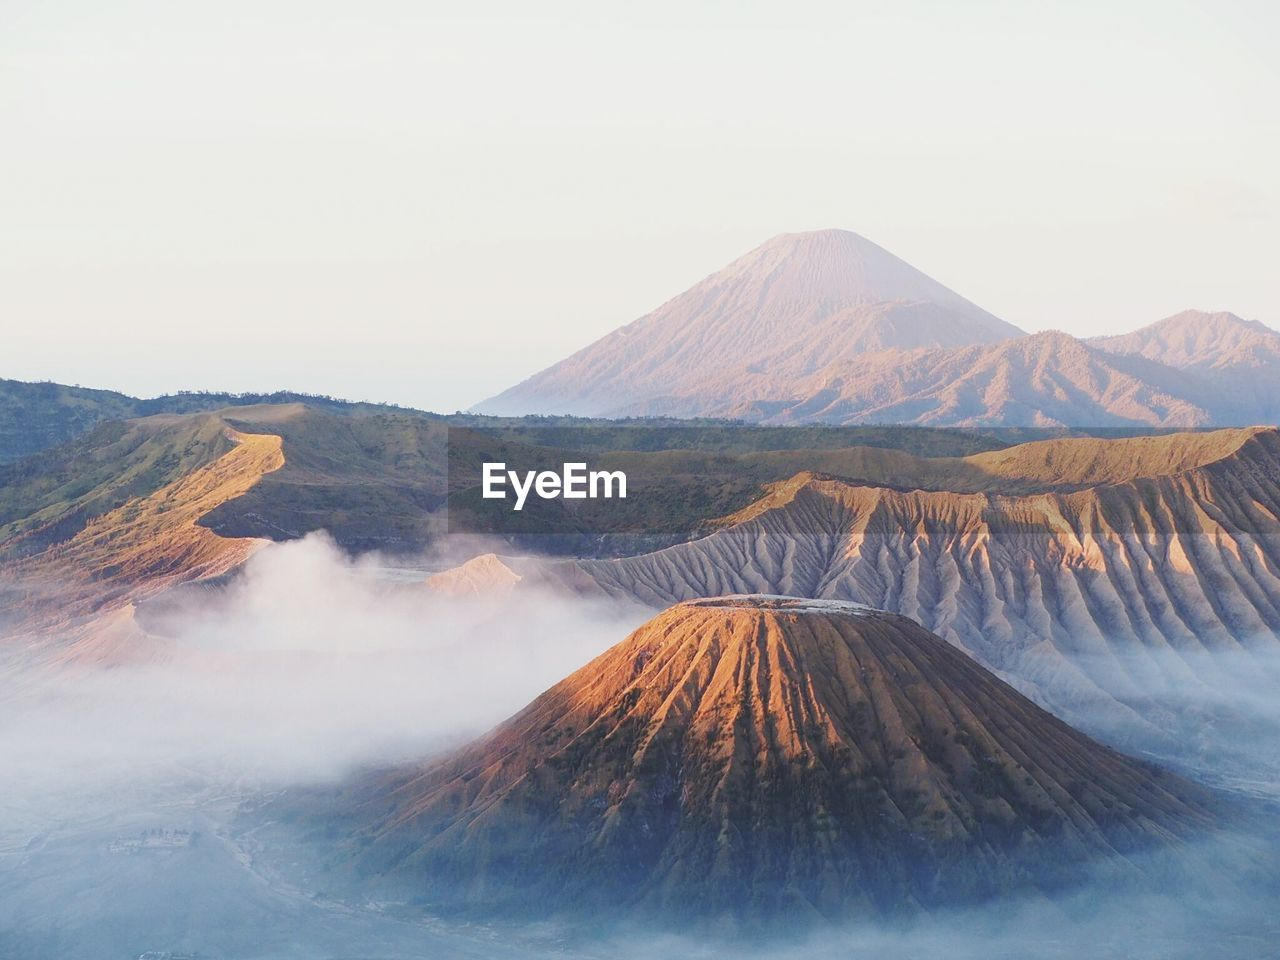 mountain, beauty in nature, tranquil scene, sky, tranquility, scenics - nature, non-urban scene, environment, volcano, no people, landscape, idyllic, land, physical geography, geology, nature, smoke - physical structure, travel destinations, remote, mountain range, outdoors, volcanic crater, mountain peak, power in nature